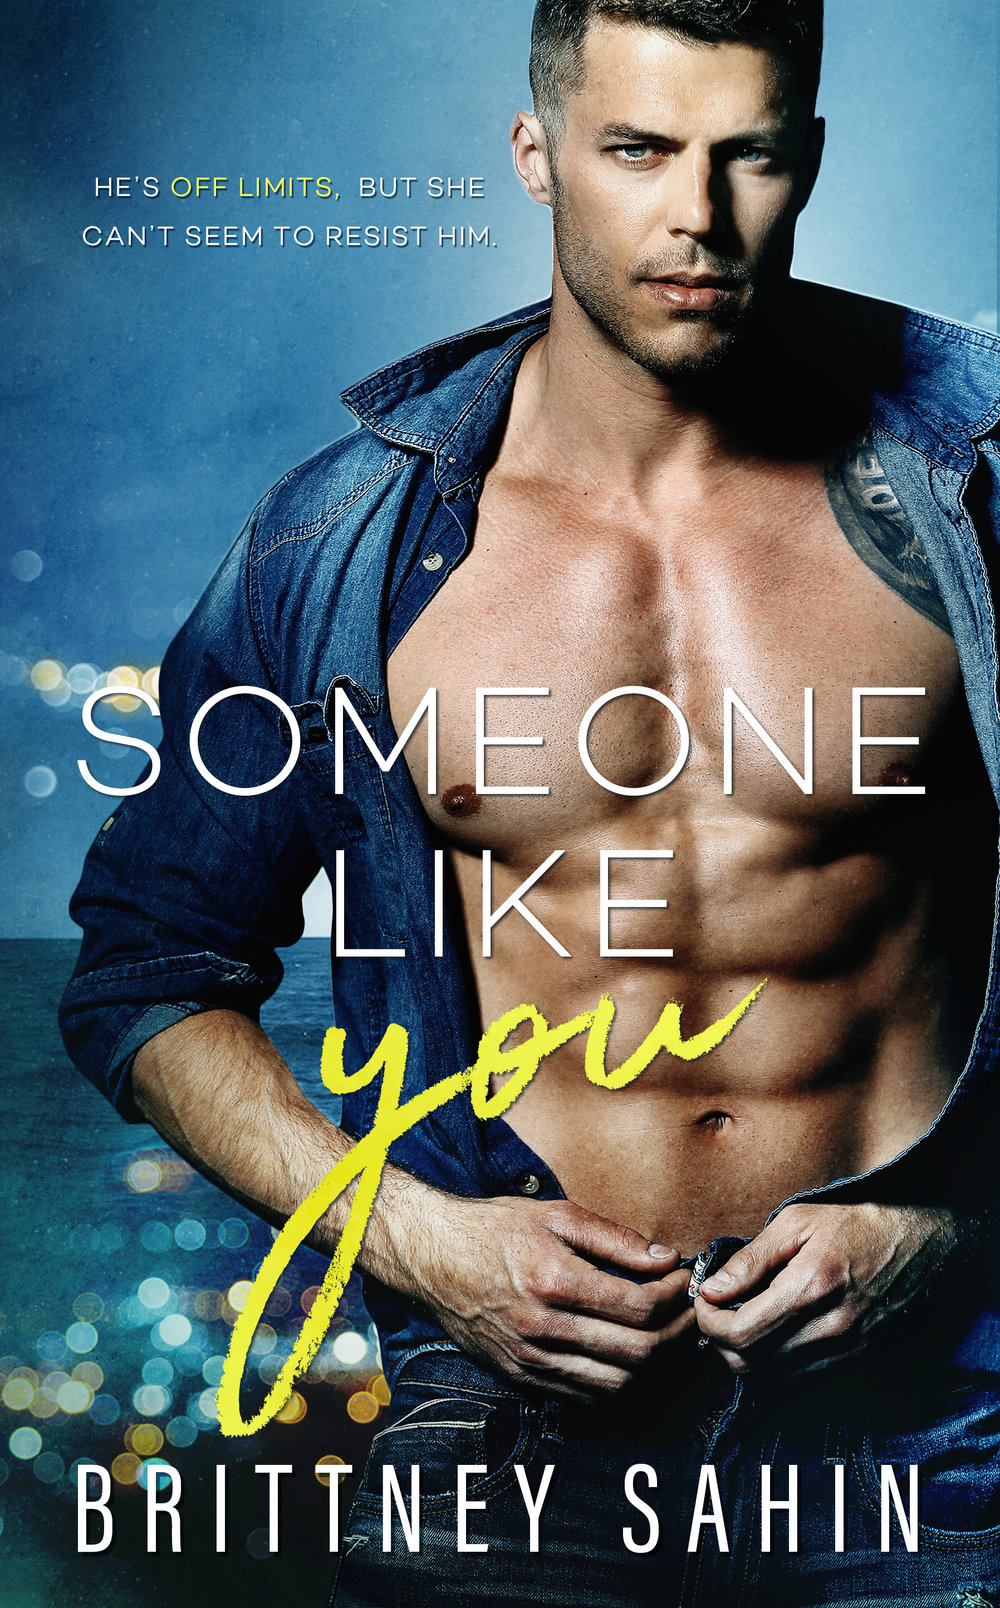 BSSomeoneLikeYouBookCover5x8_HIGH.jpg